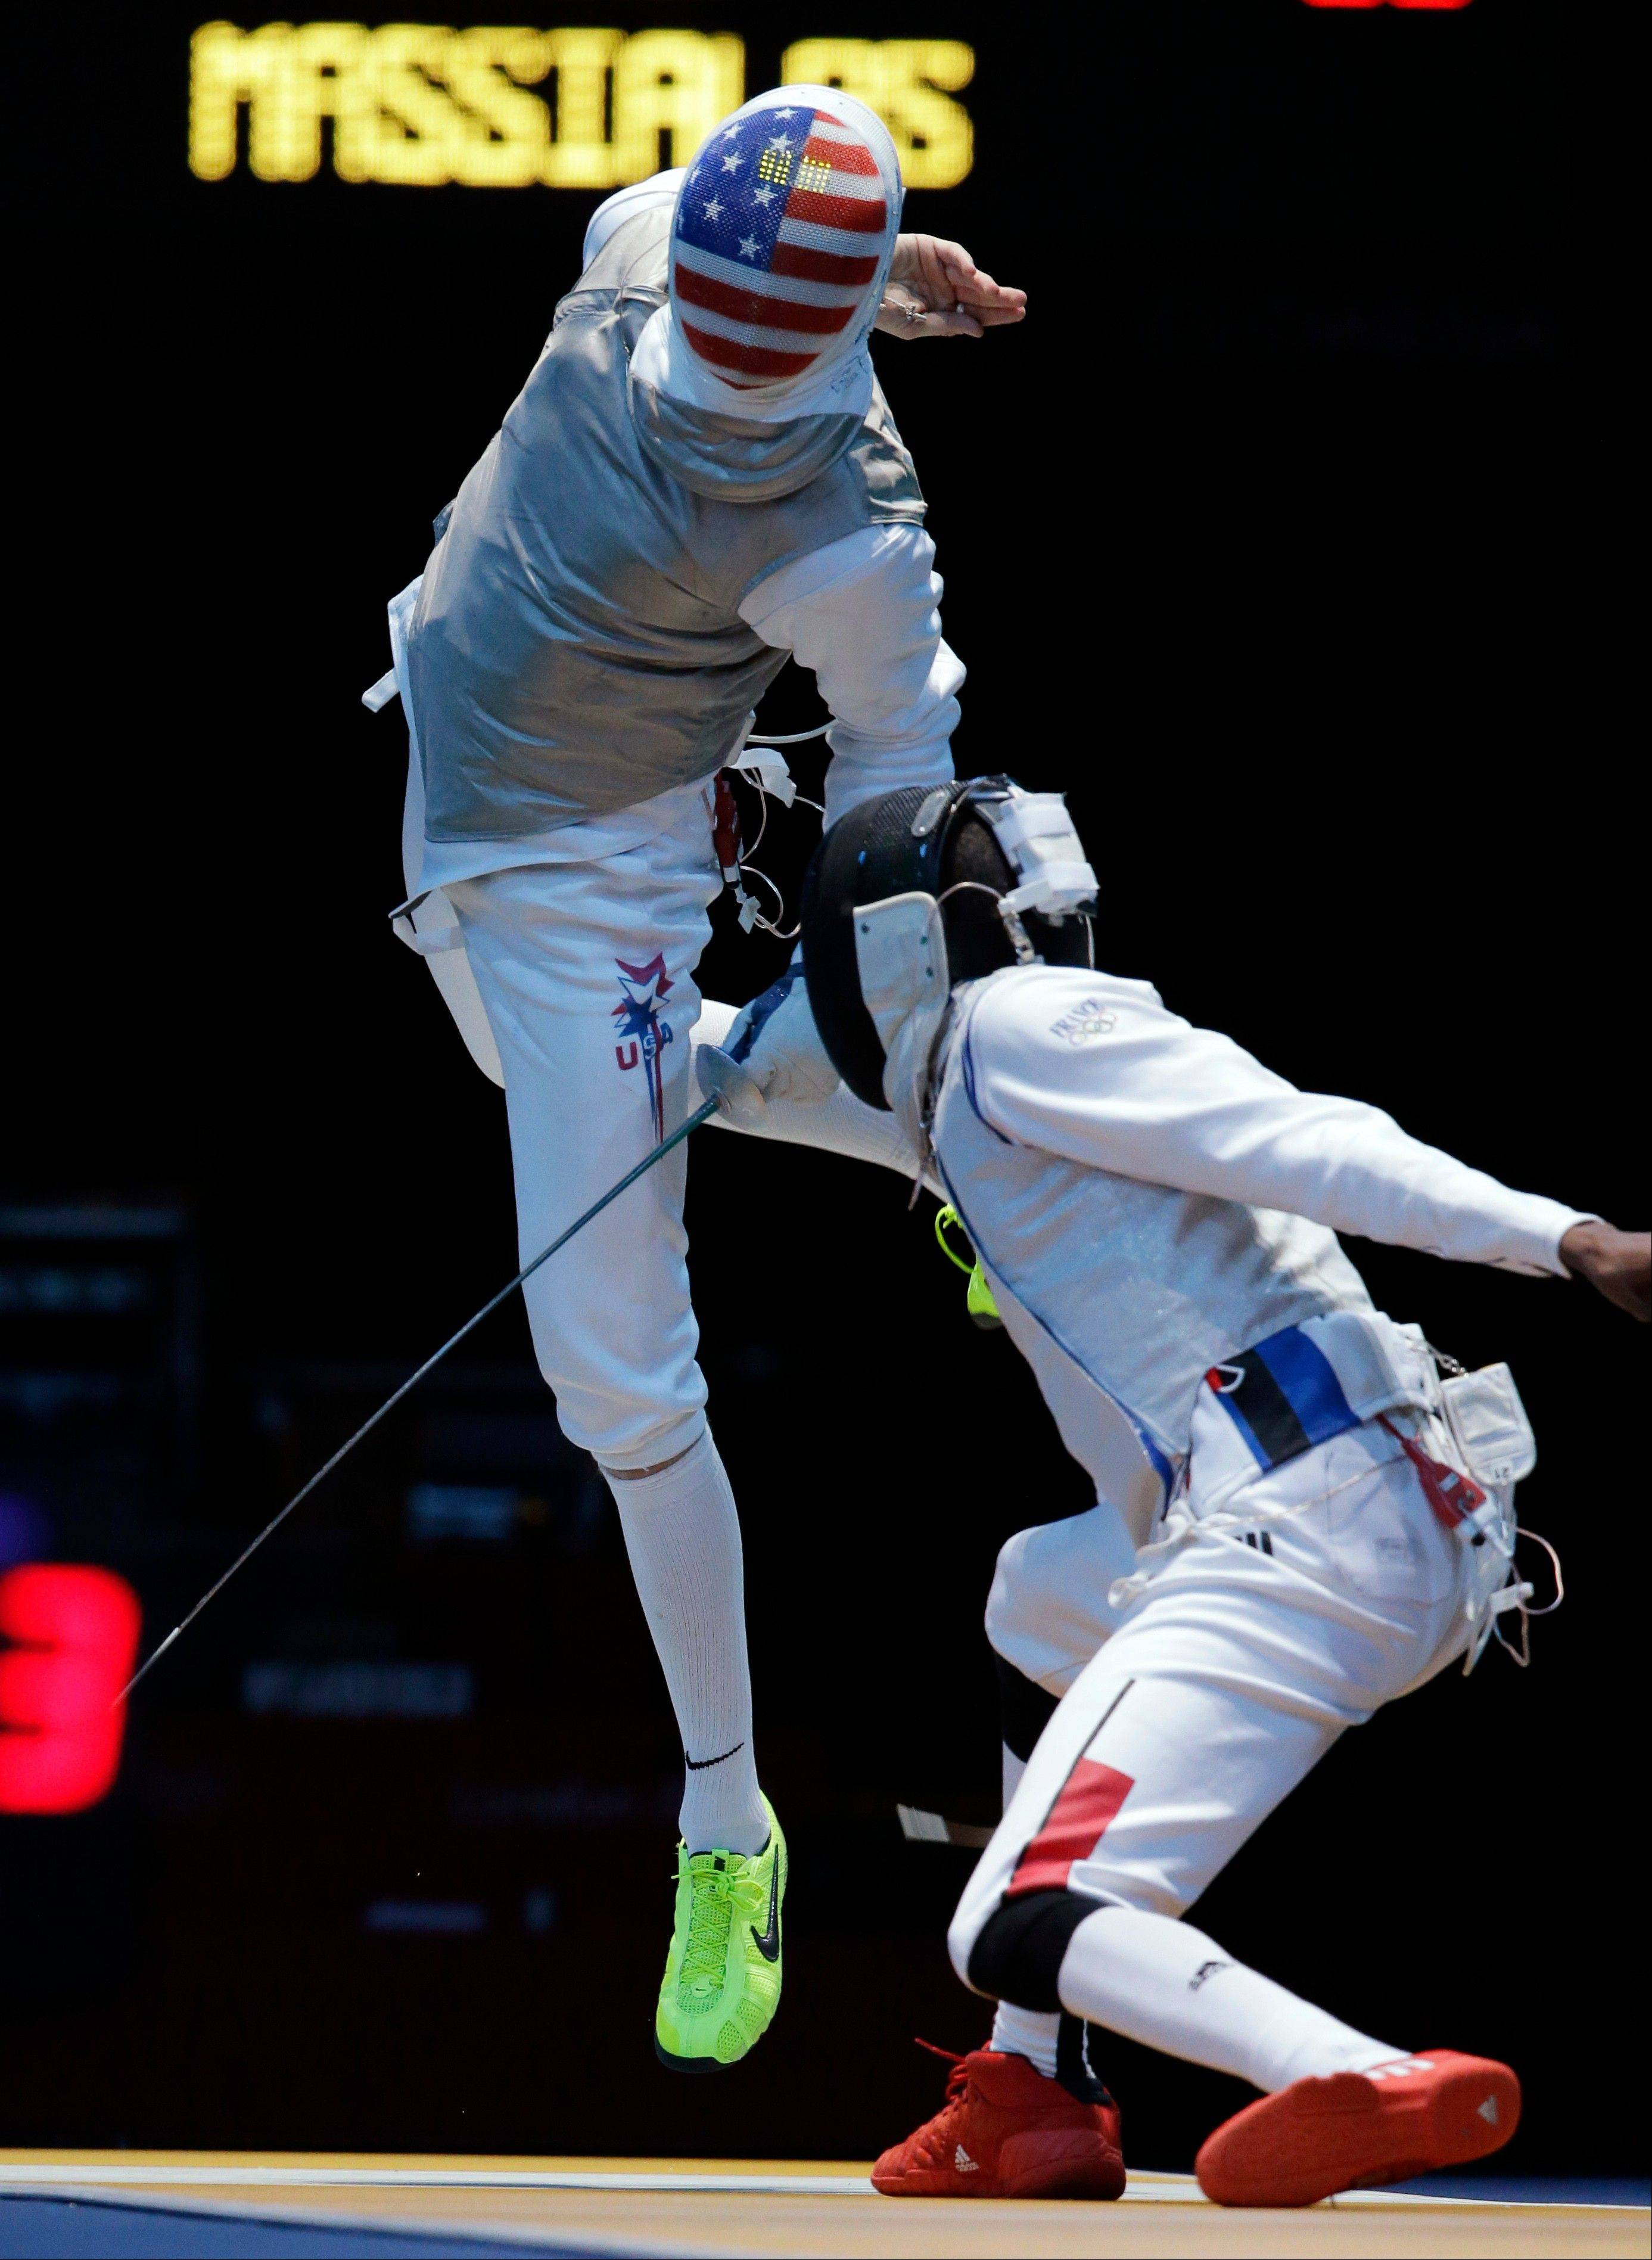 Race Imboden of the United States, left, competes against Enzo Lefort of France during the men's foil team fencing competition at the 2012 Summer Olympics, Sunday, Aug. 5, 2012, in London.